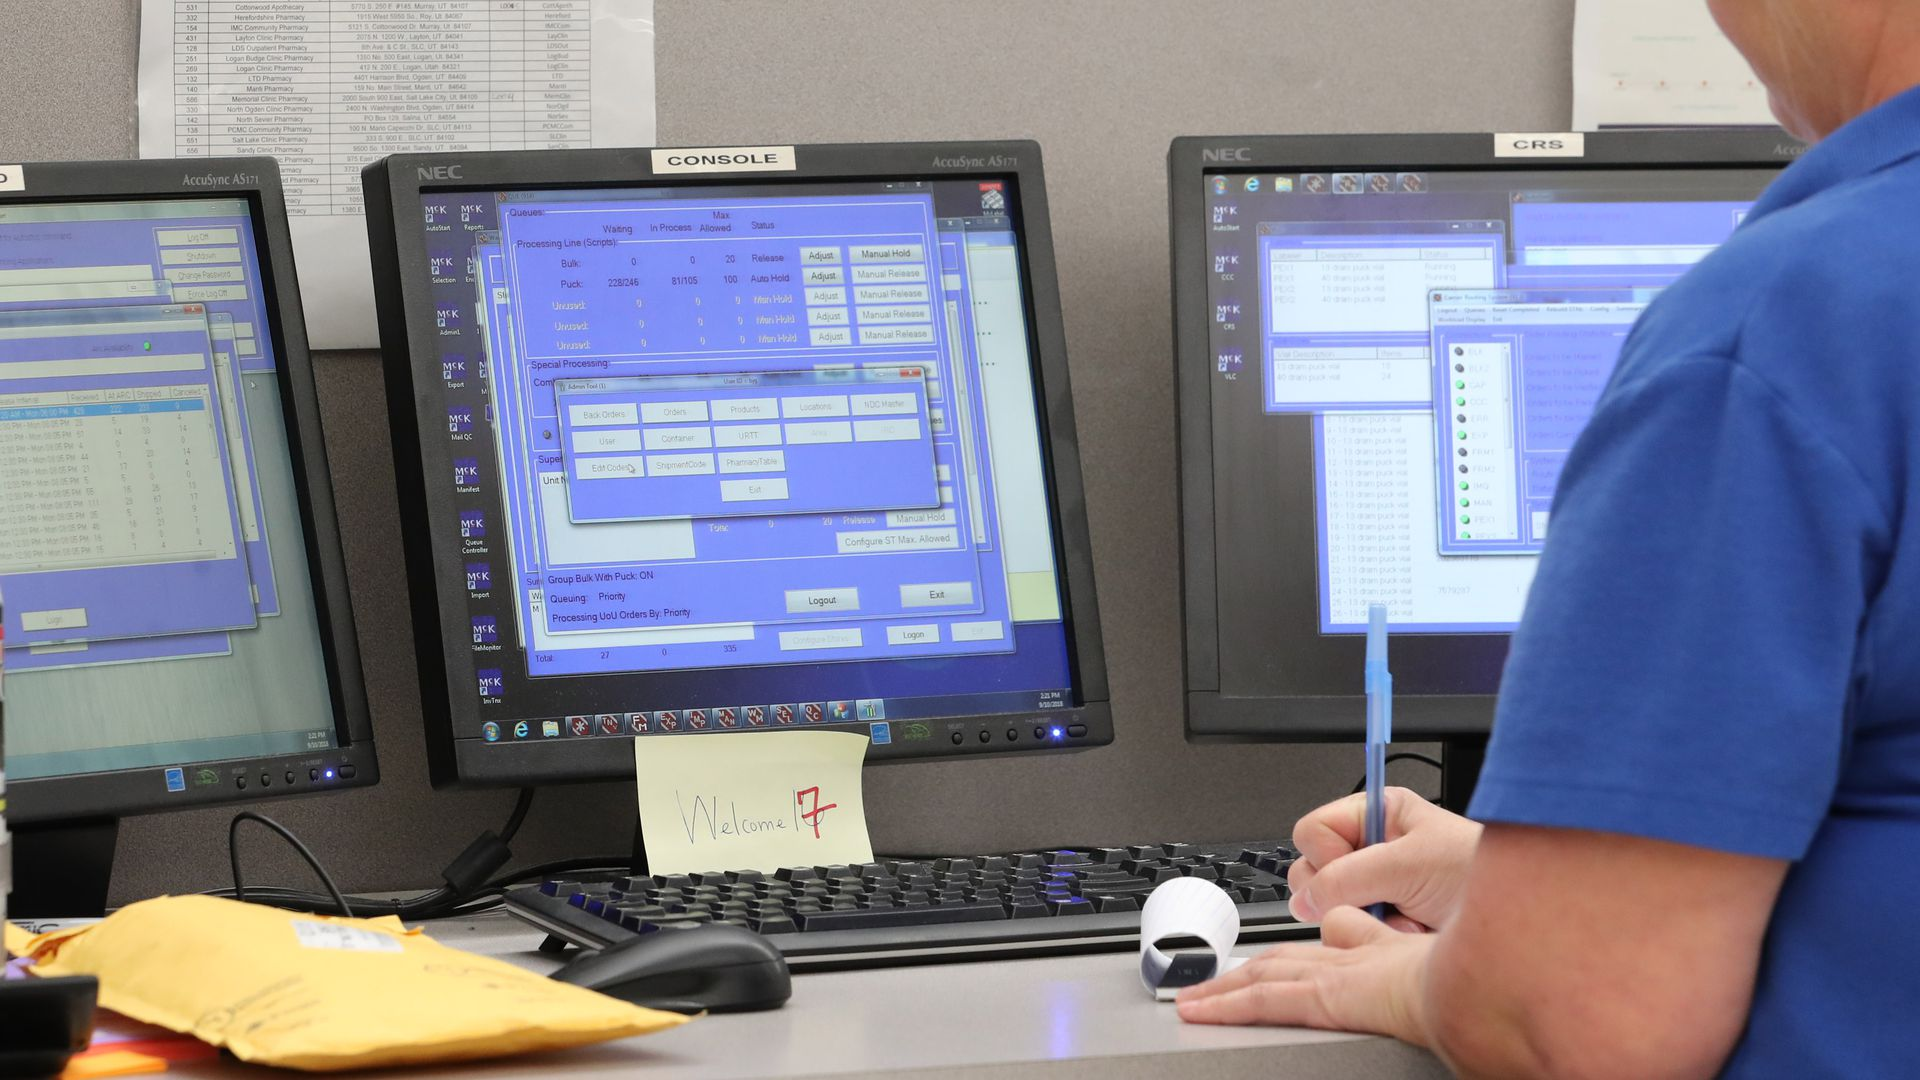 A pharmacy technician writes on a piece of paper in front of three computer screens.